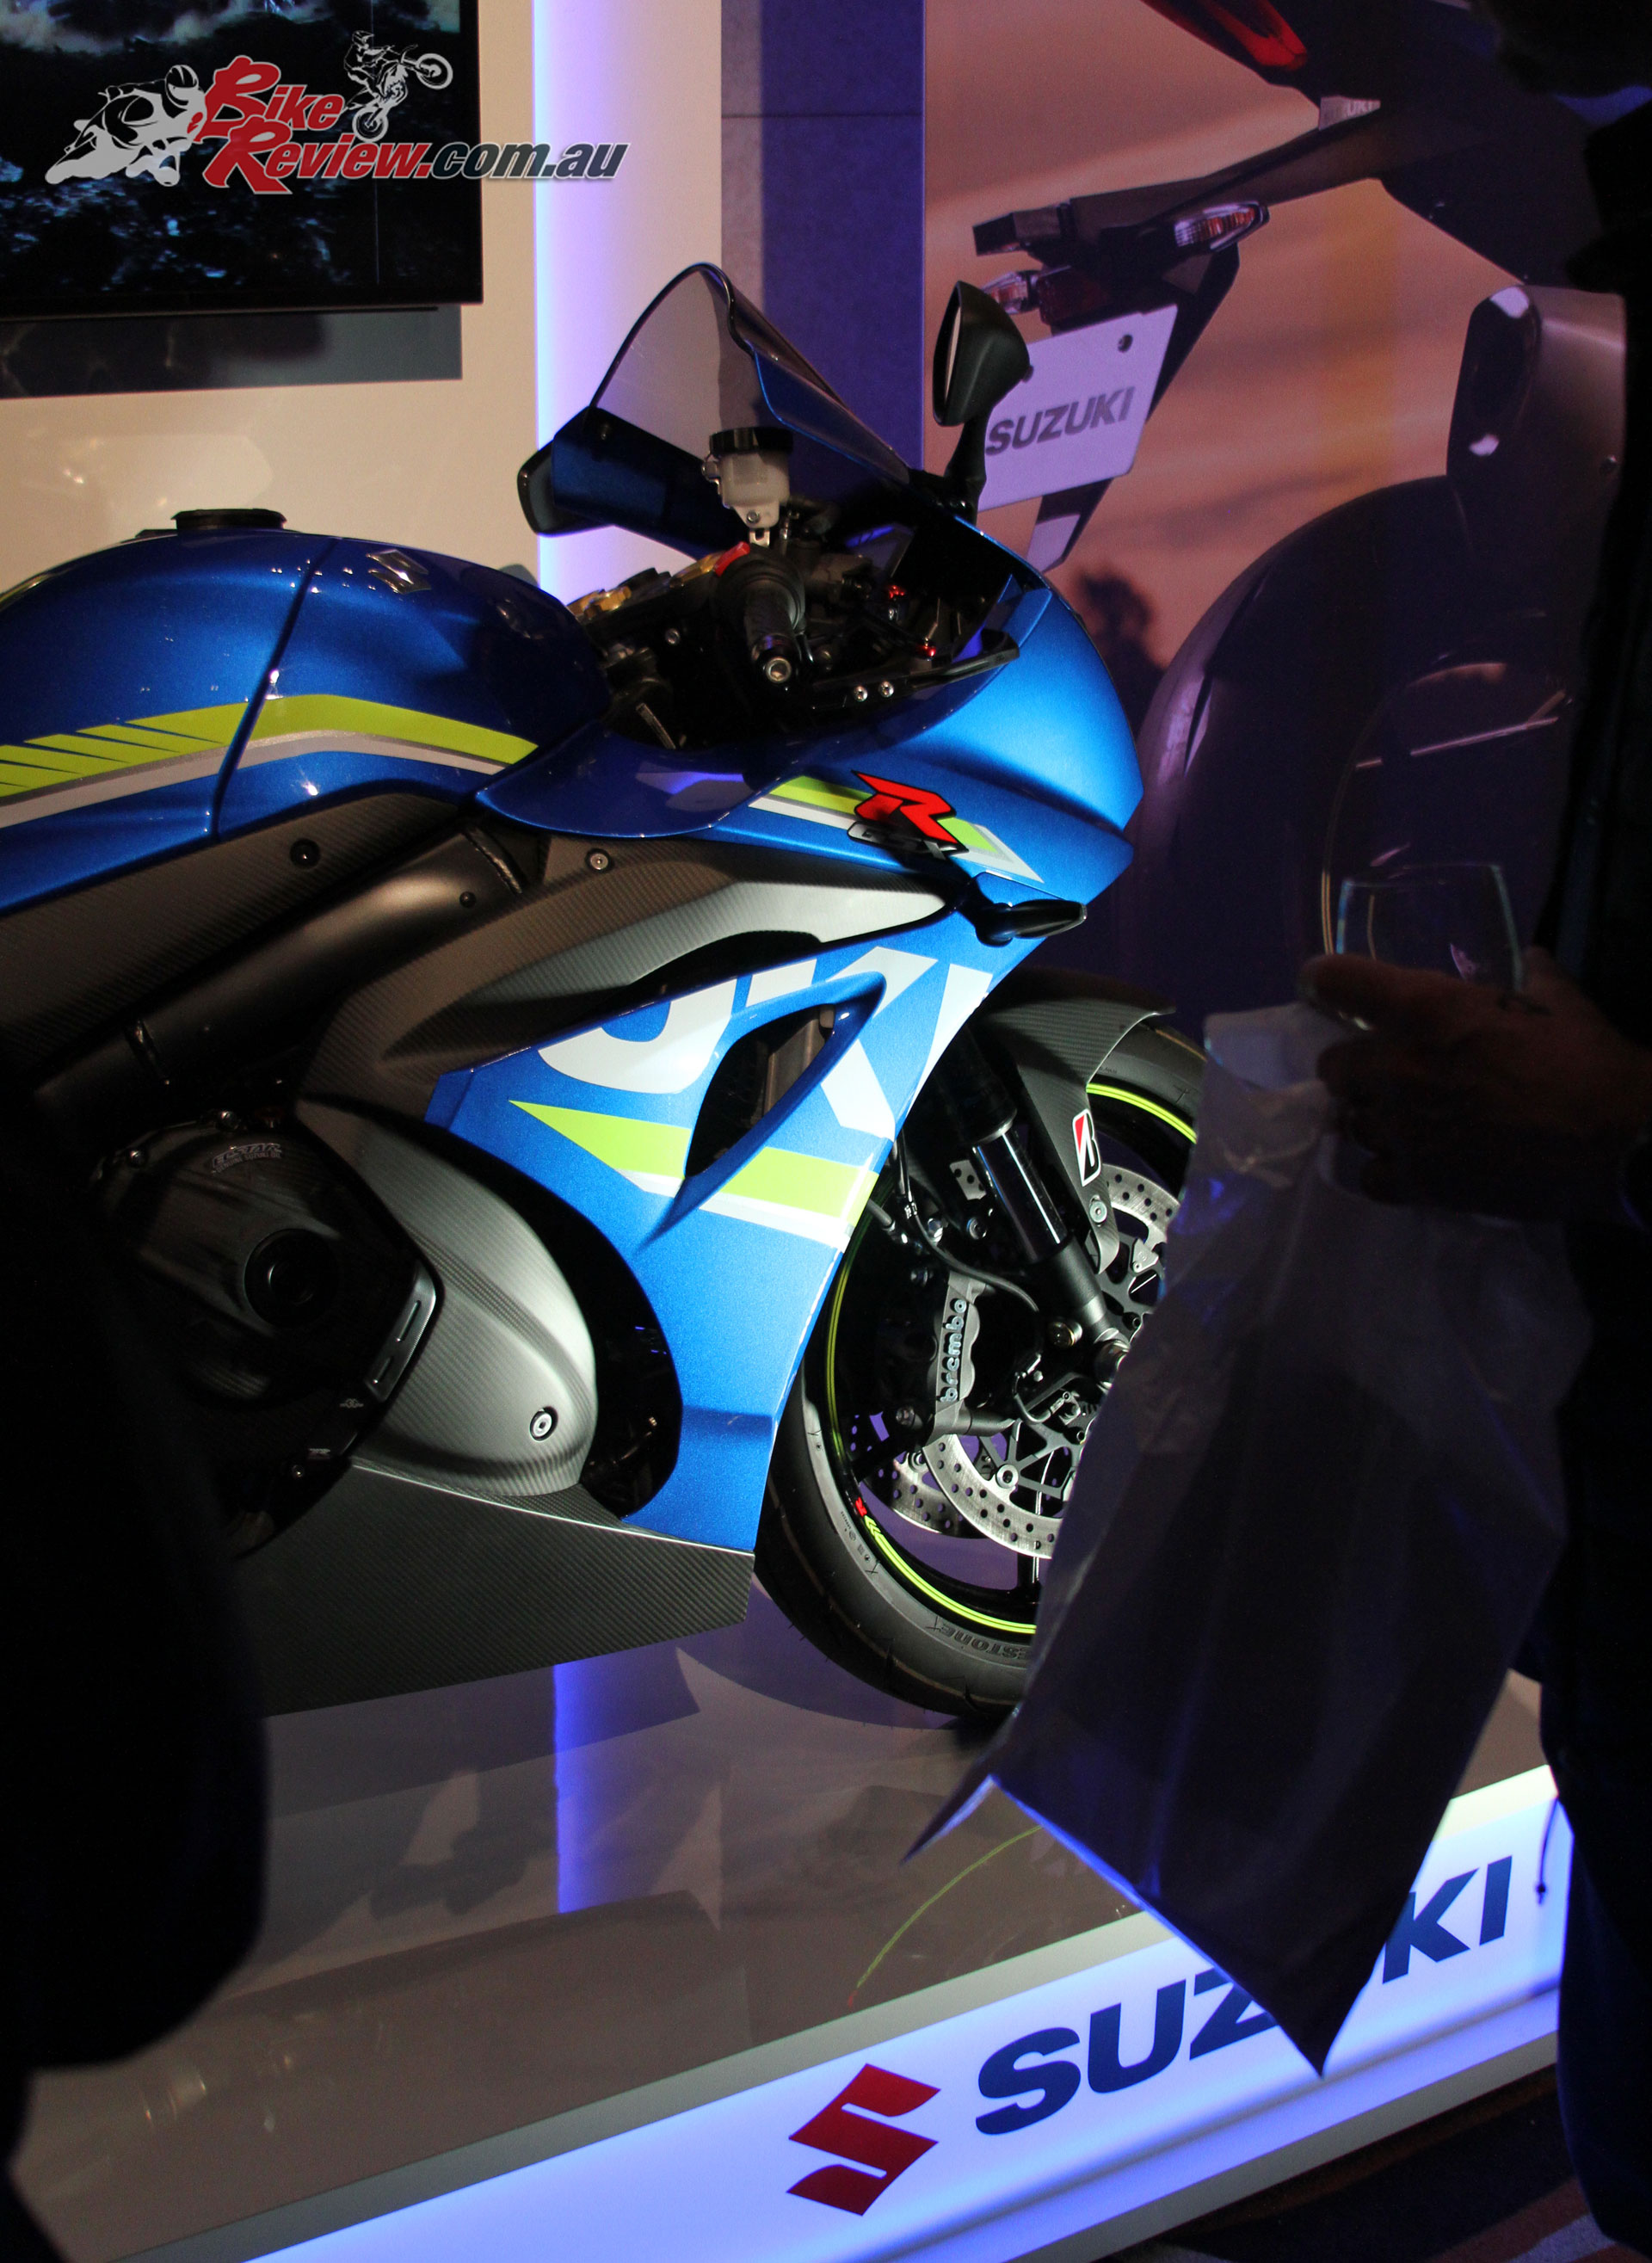 The GSX-R1000 looks awesome kitted out in the accessories, took me a second to realise it had carbon-fibre fairing pieces